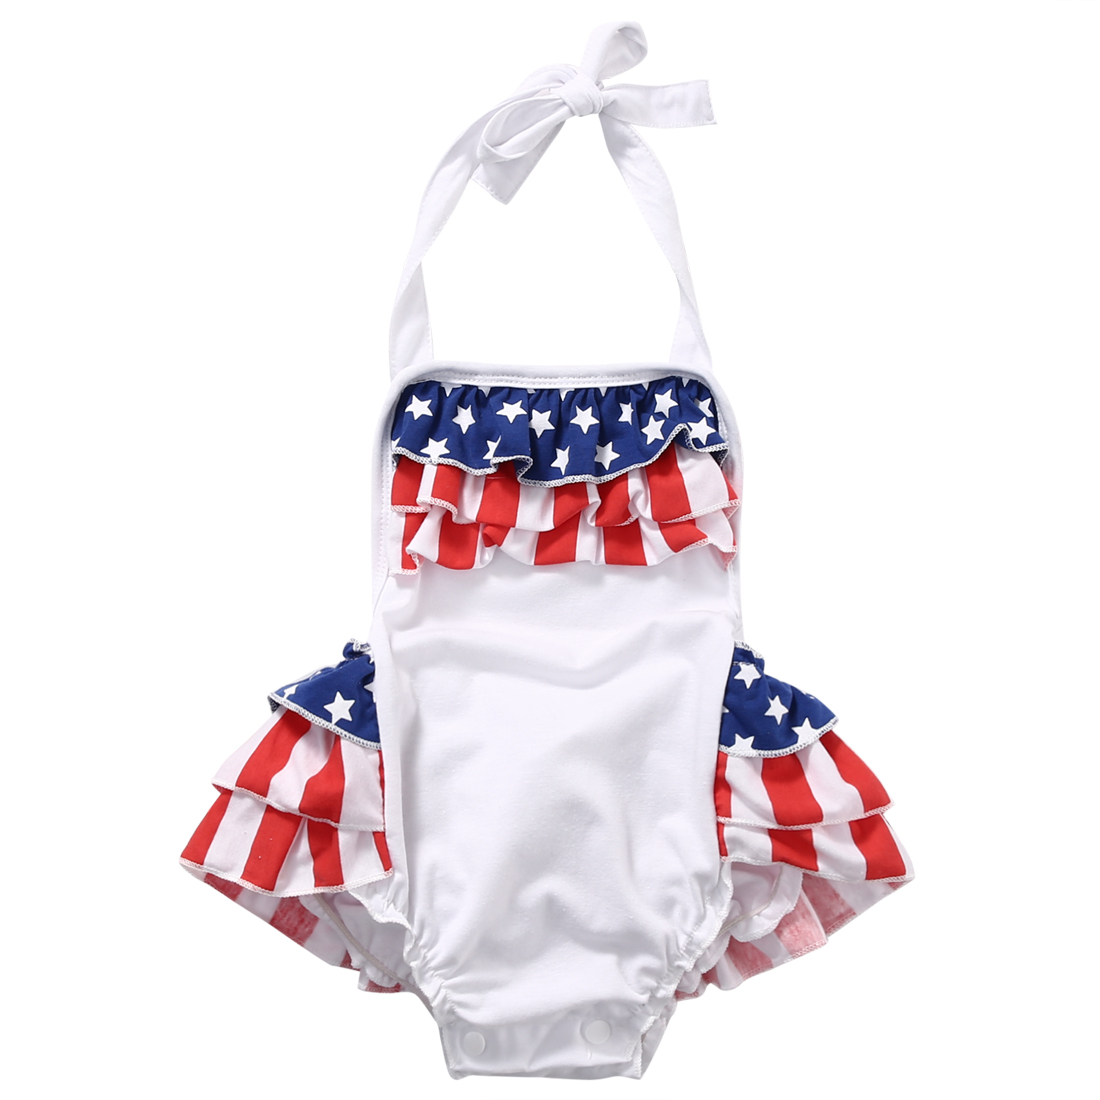 US Newborn Infant Baby Girl Bodysuit Tutu The American flag Bodysuit  Jumpsuit Outfit Sunsuit Clothes( - Online Buy Wholesale American Flag Outfit From China American Flag